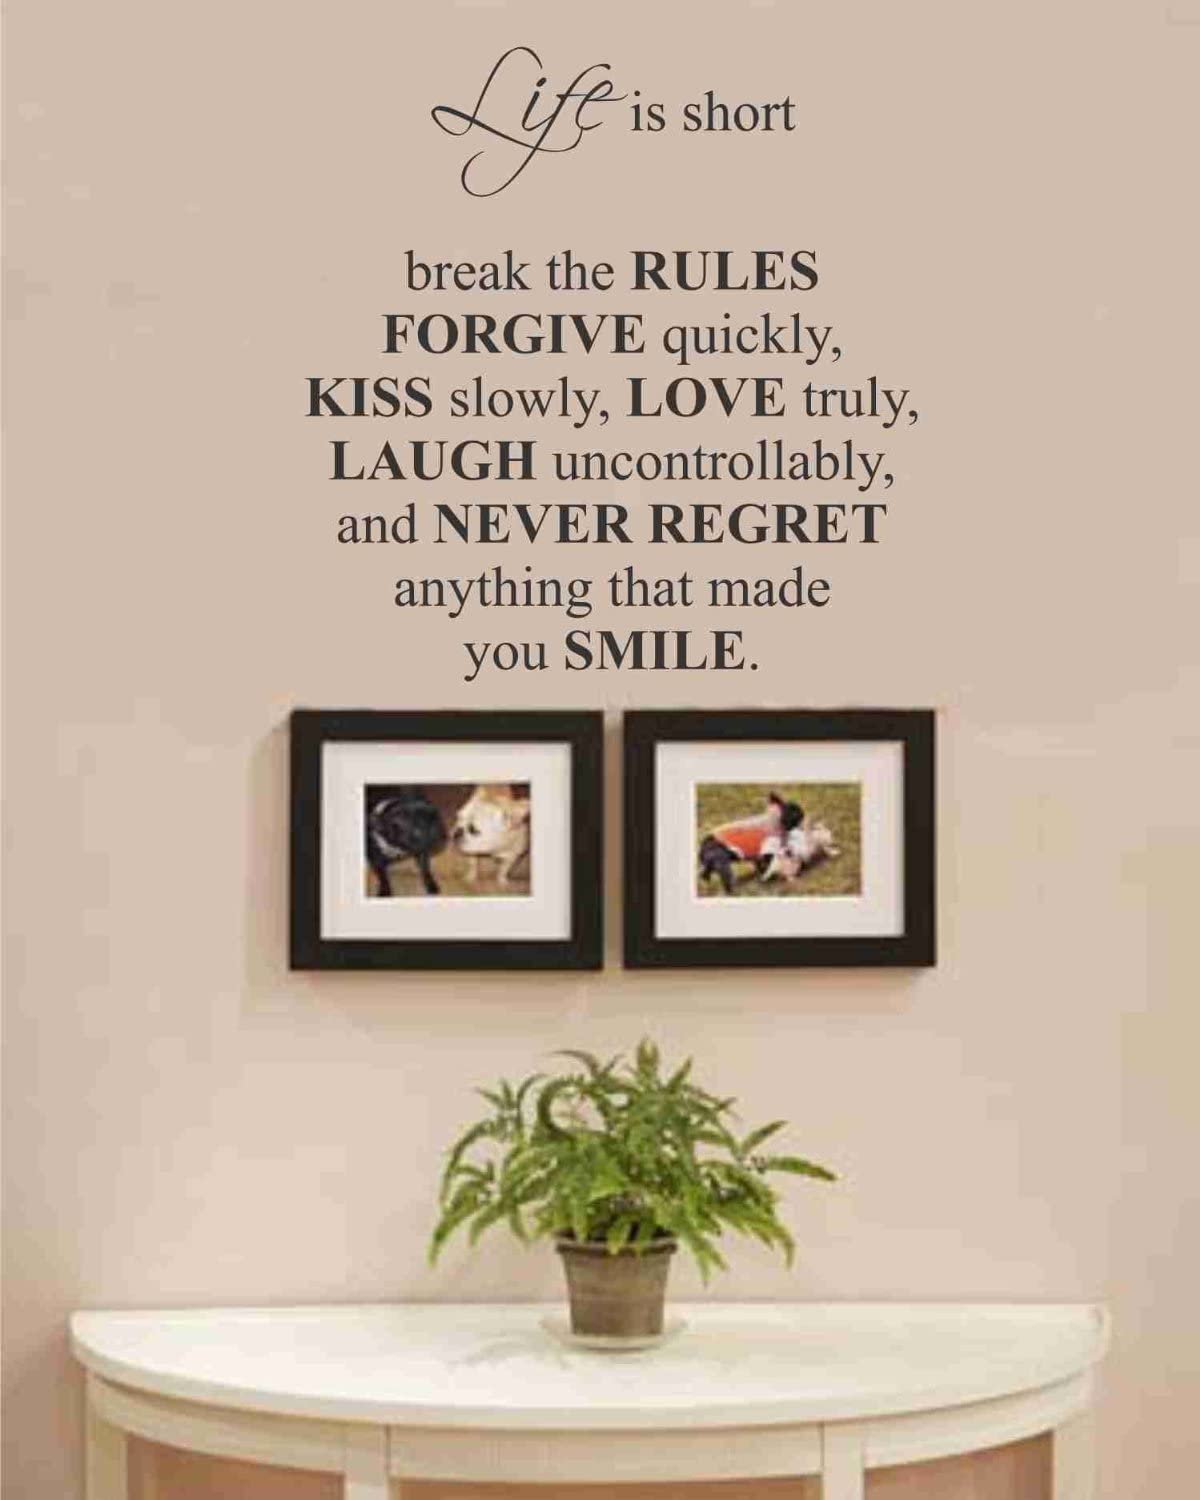 Life is short break the rules forgive quickly, kiss slowly, love truly, laugh uncontrollably, and never regret anything that made you smile. vinyl wall art Inspirational quotes and saying home decor decal sticker